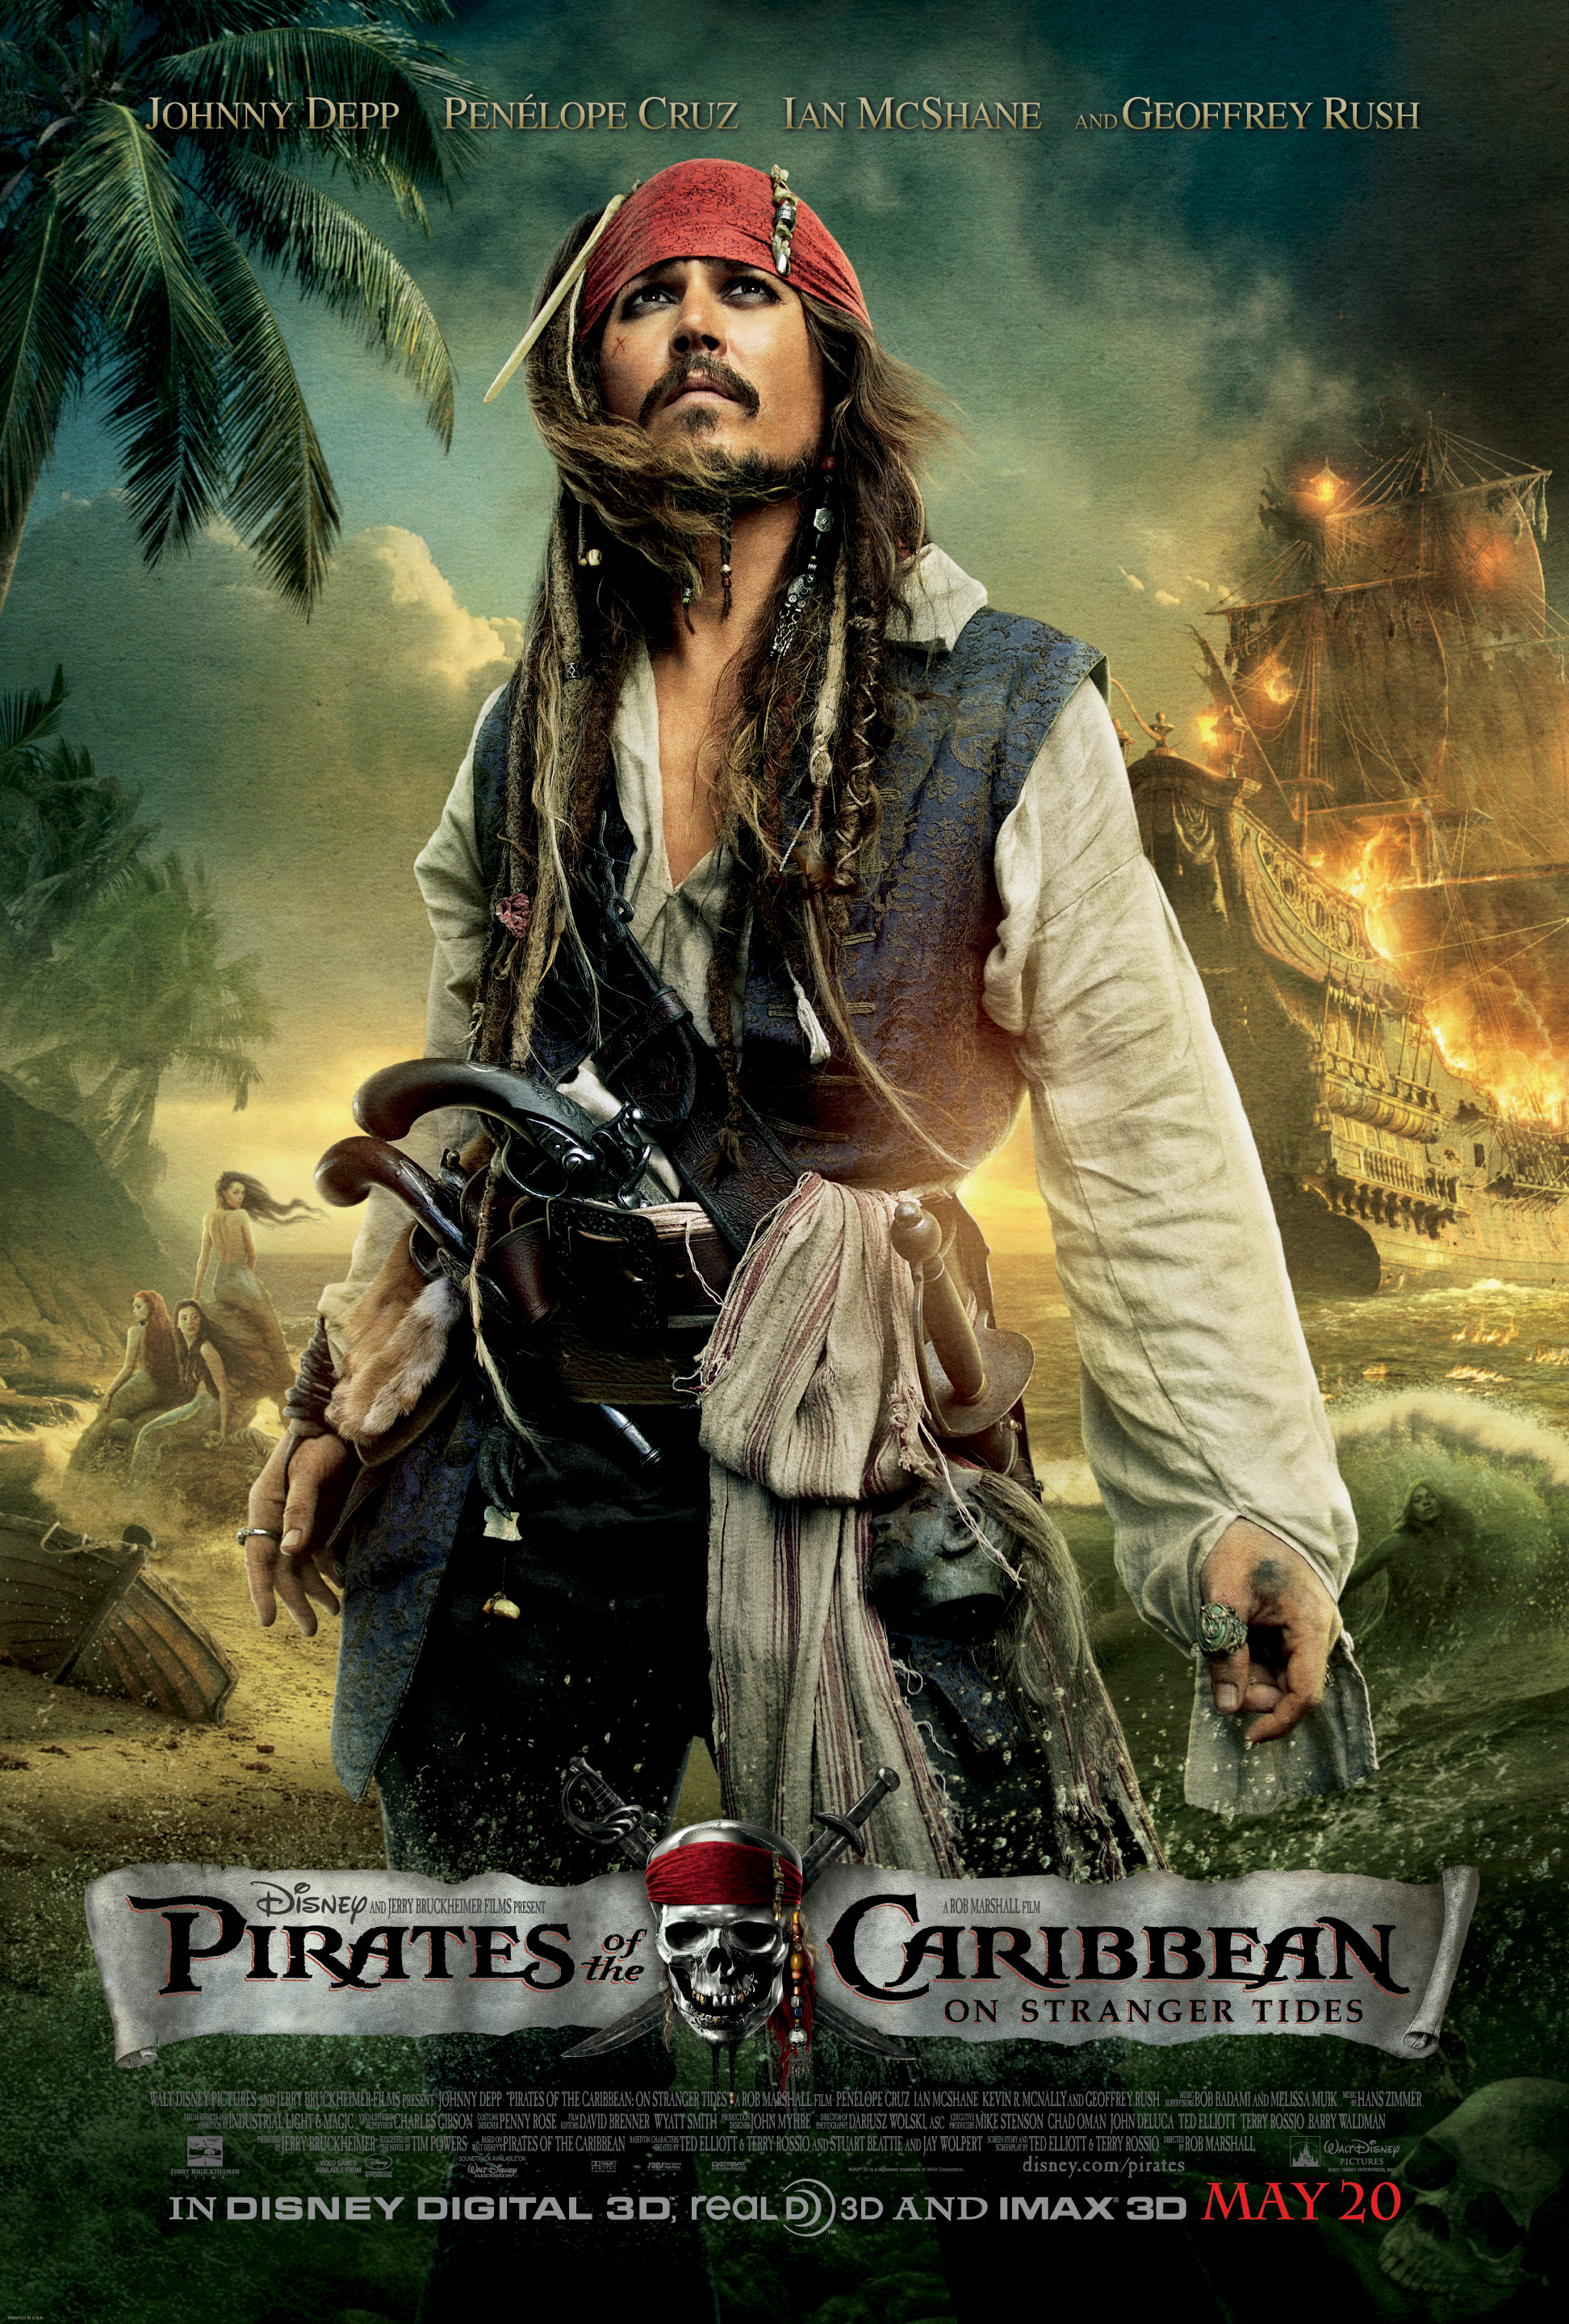 Pirates of the Caribbean: Stranger Tides World Premier Sweepstakes